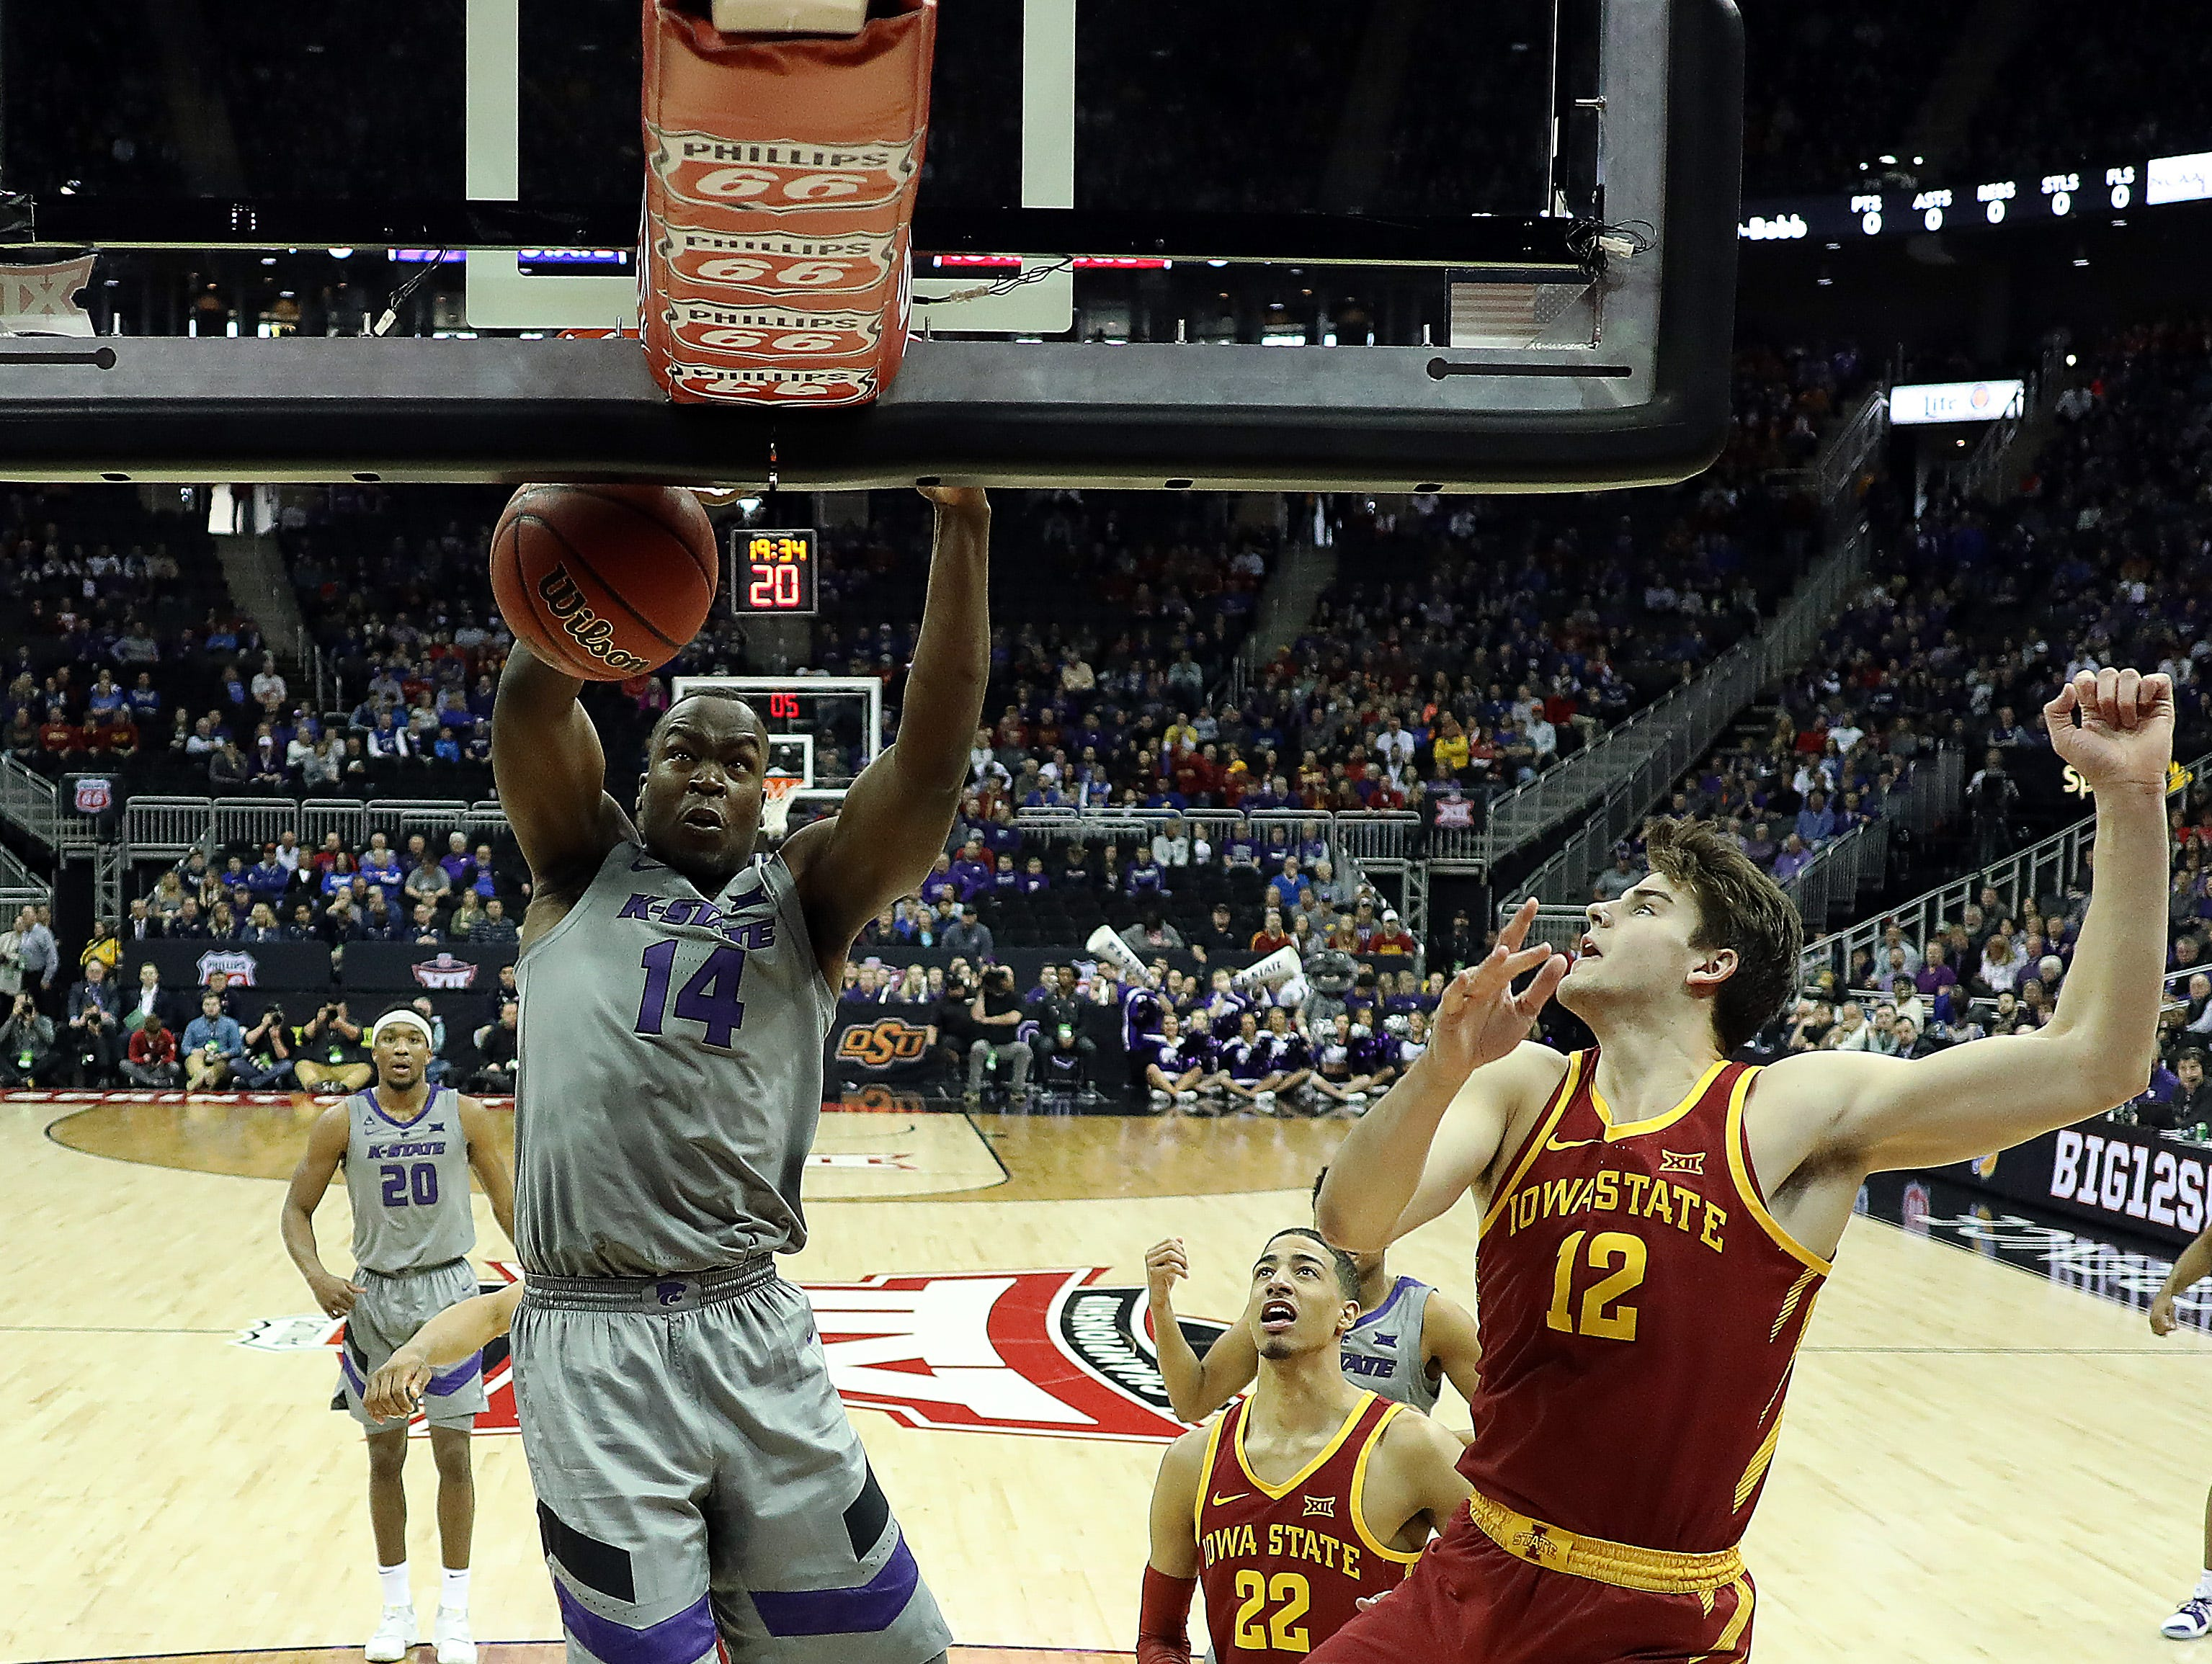 KANSAS CITY, MISSOURI - MARCH 15:   Makol Mawien #14 of the Kansas State Wildcats dunks as Michael Jacobson #12 of the Iowa State Cyclones defends during the semifinal game of the Big 12 Basketball Tournament at Sprint Center on March 15, 2019 in Kansas City, Missouri. (Photo by Jamie Squire/Getty Images)